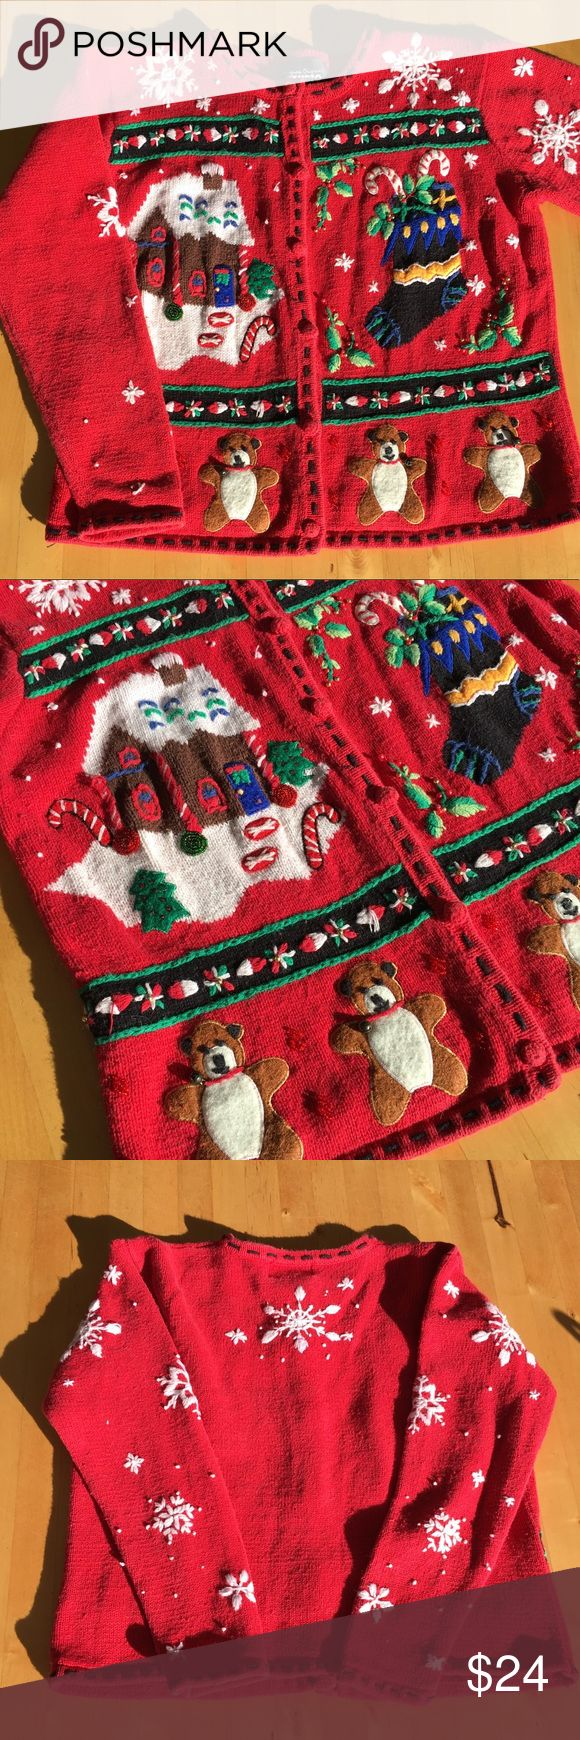 Ugly Christmas cardigan This has to be the cutest but ugliest Christmas cardigans (๑˃̵ᴗ˂̵) Those bears with bells on them are just too cute!!!  Size M. Vintage condition. No holes or stains. Sweaters Cardigans